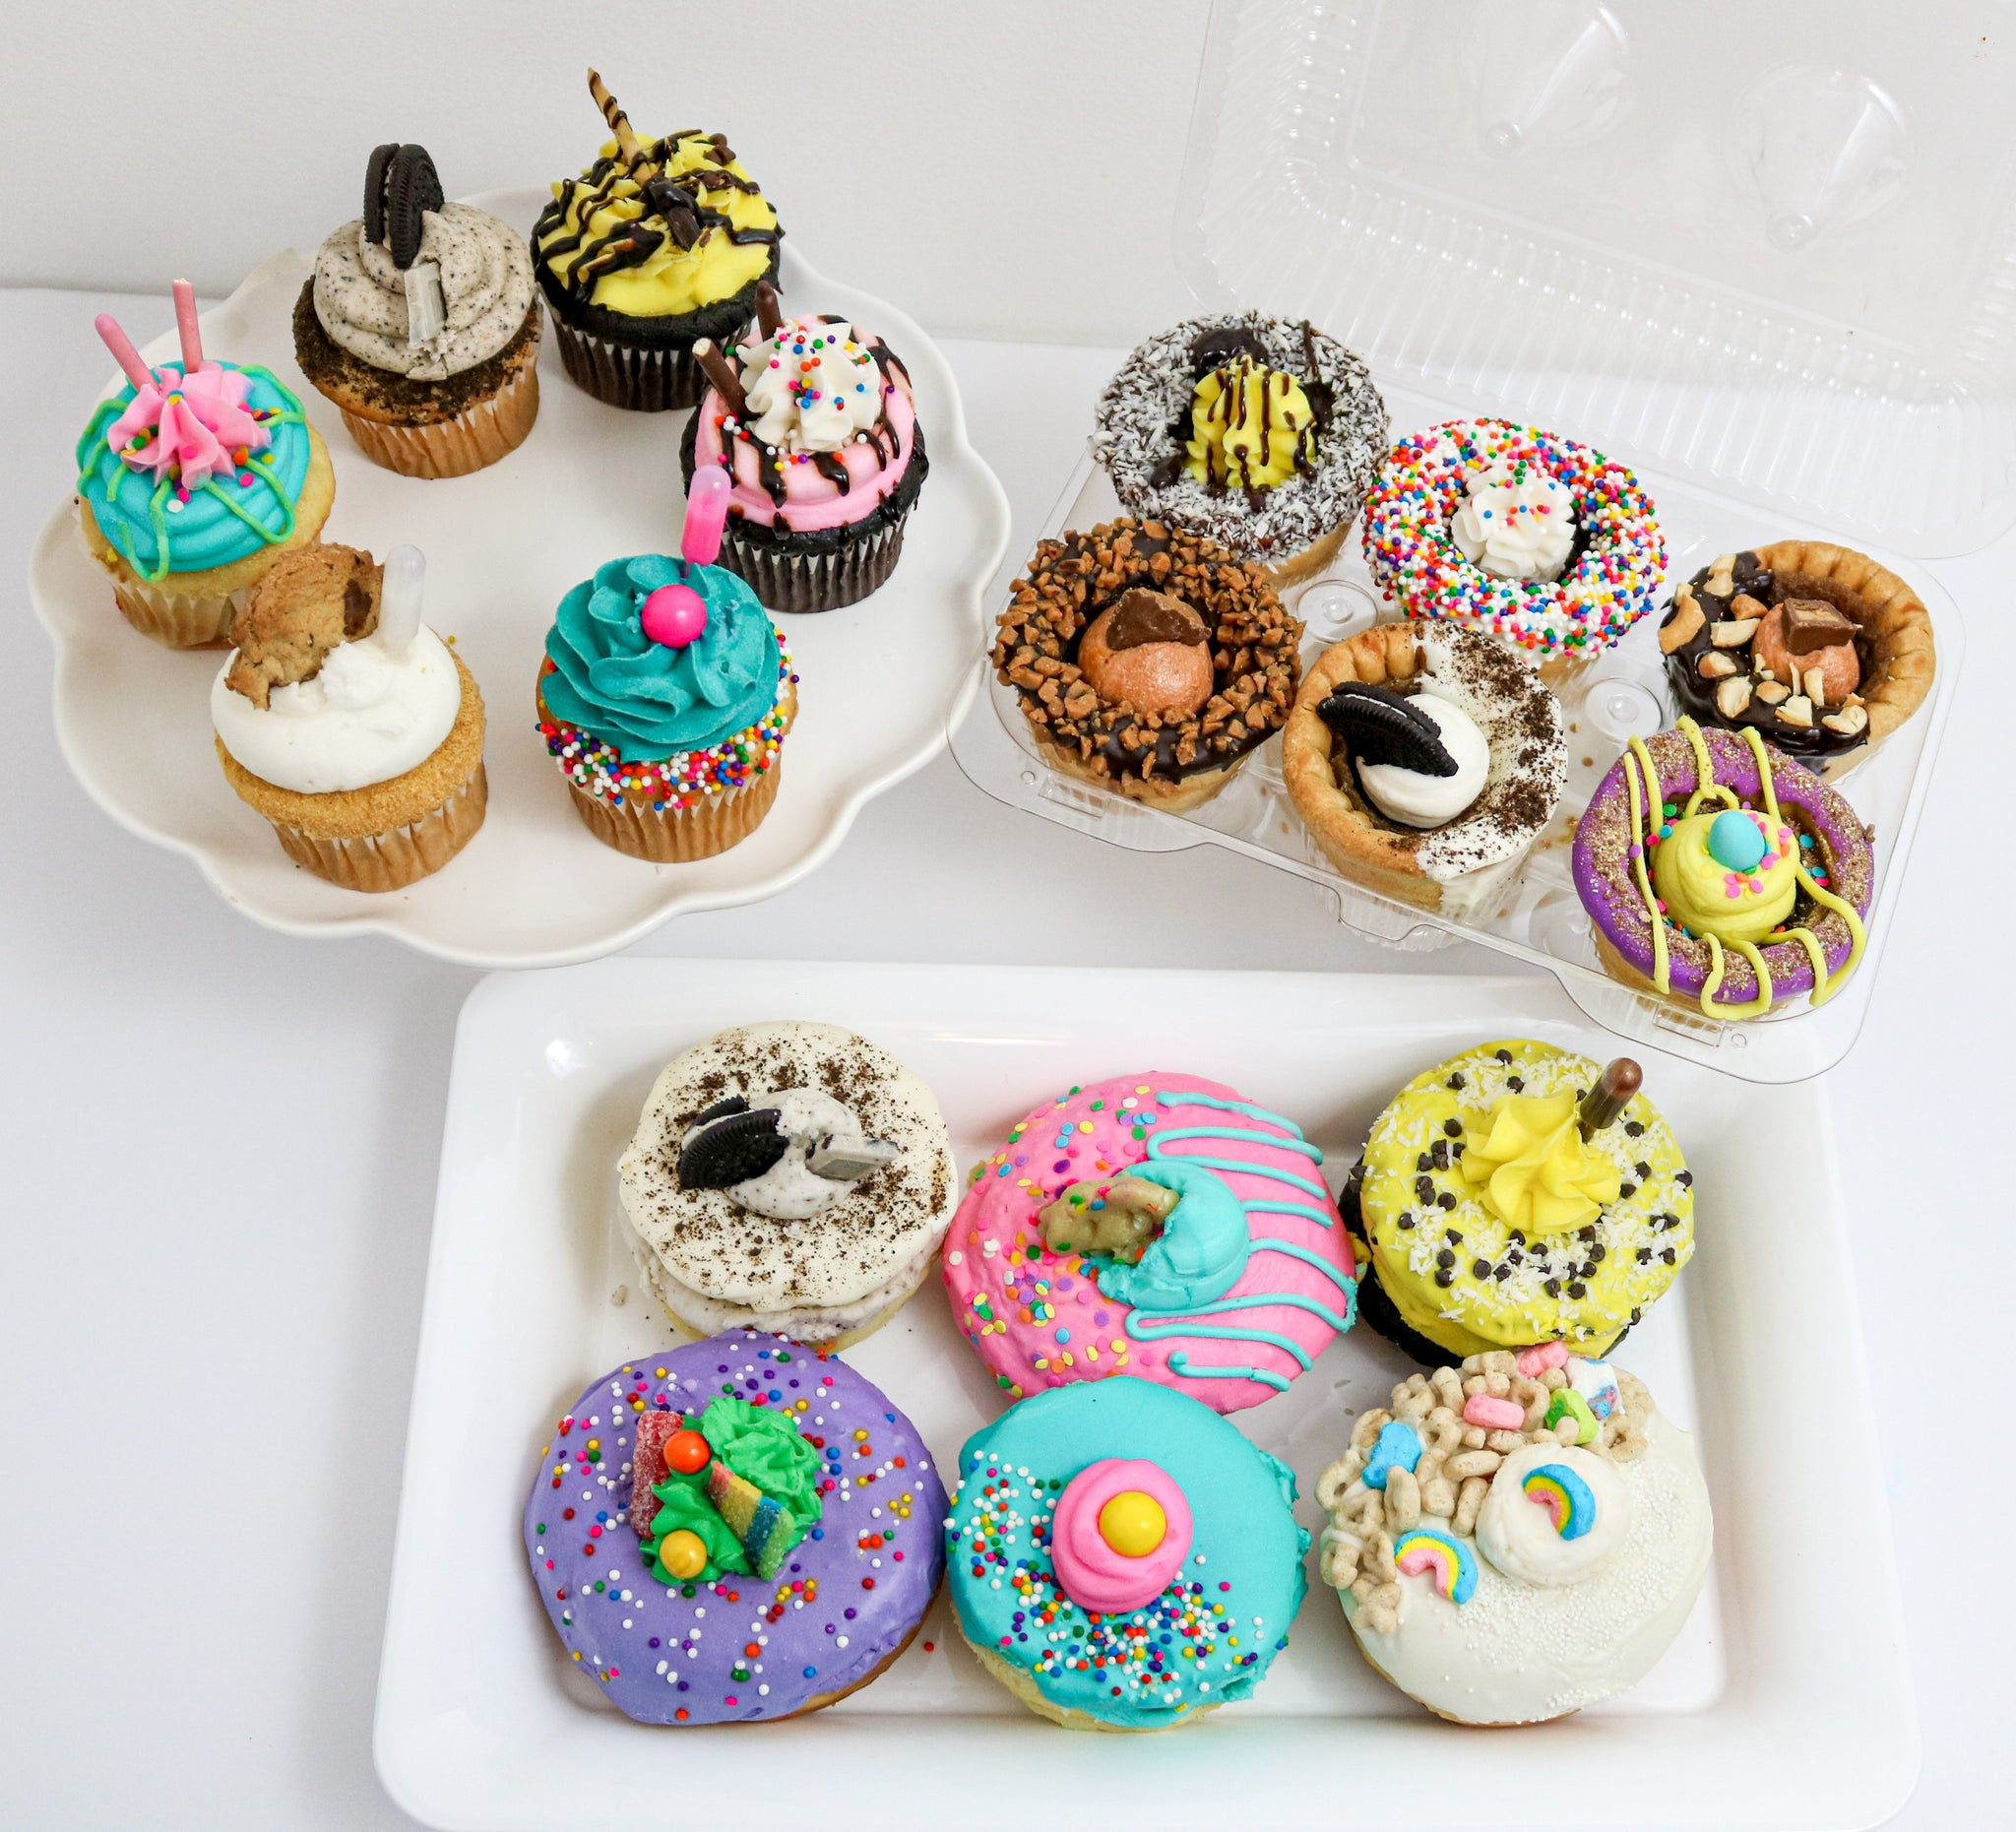 The Everything Dessert Corporate Pack 48 Pieces (12 Donuts, 12 Cupcakes, 12 Butter Tarts, 12 French Macarons) - Chick Boss Cake London Ontario